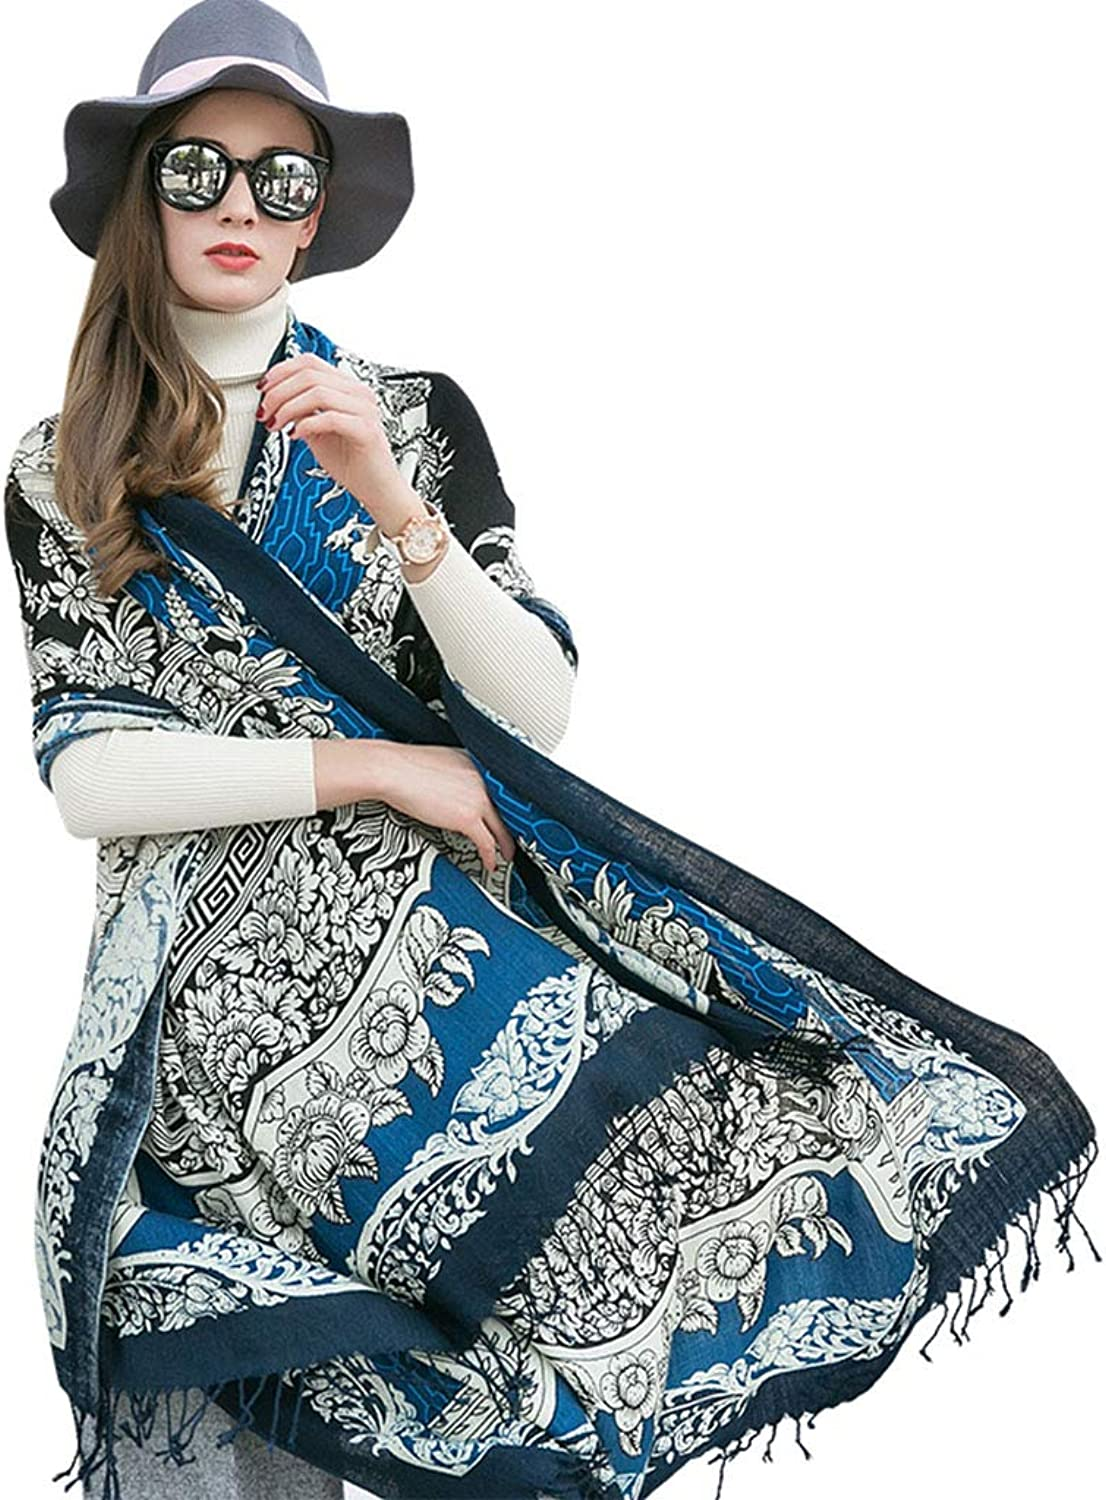 Scarves ShawlLong Cloak Cloak Spring and Autumn Warm Wool Scarf Ladies Winter Large Shawl Oversized Size Gift Box Warmth 100% Wool Birthday Gift for Girlfriend Stoles